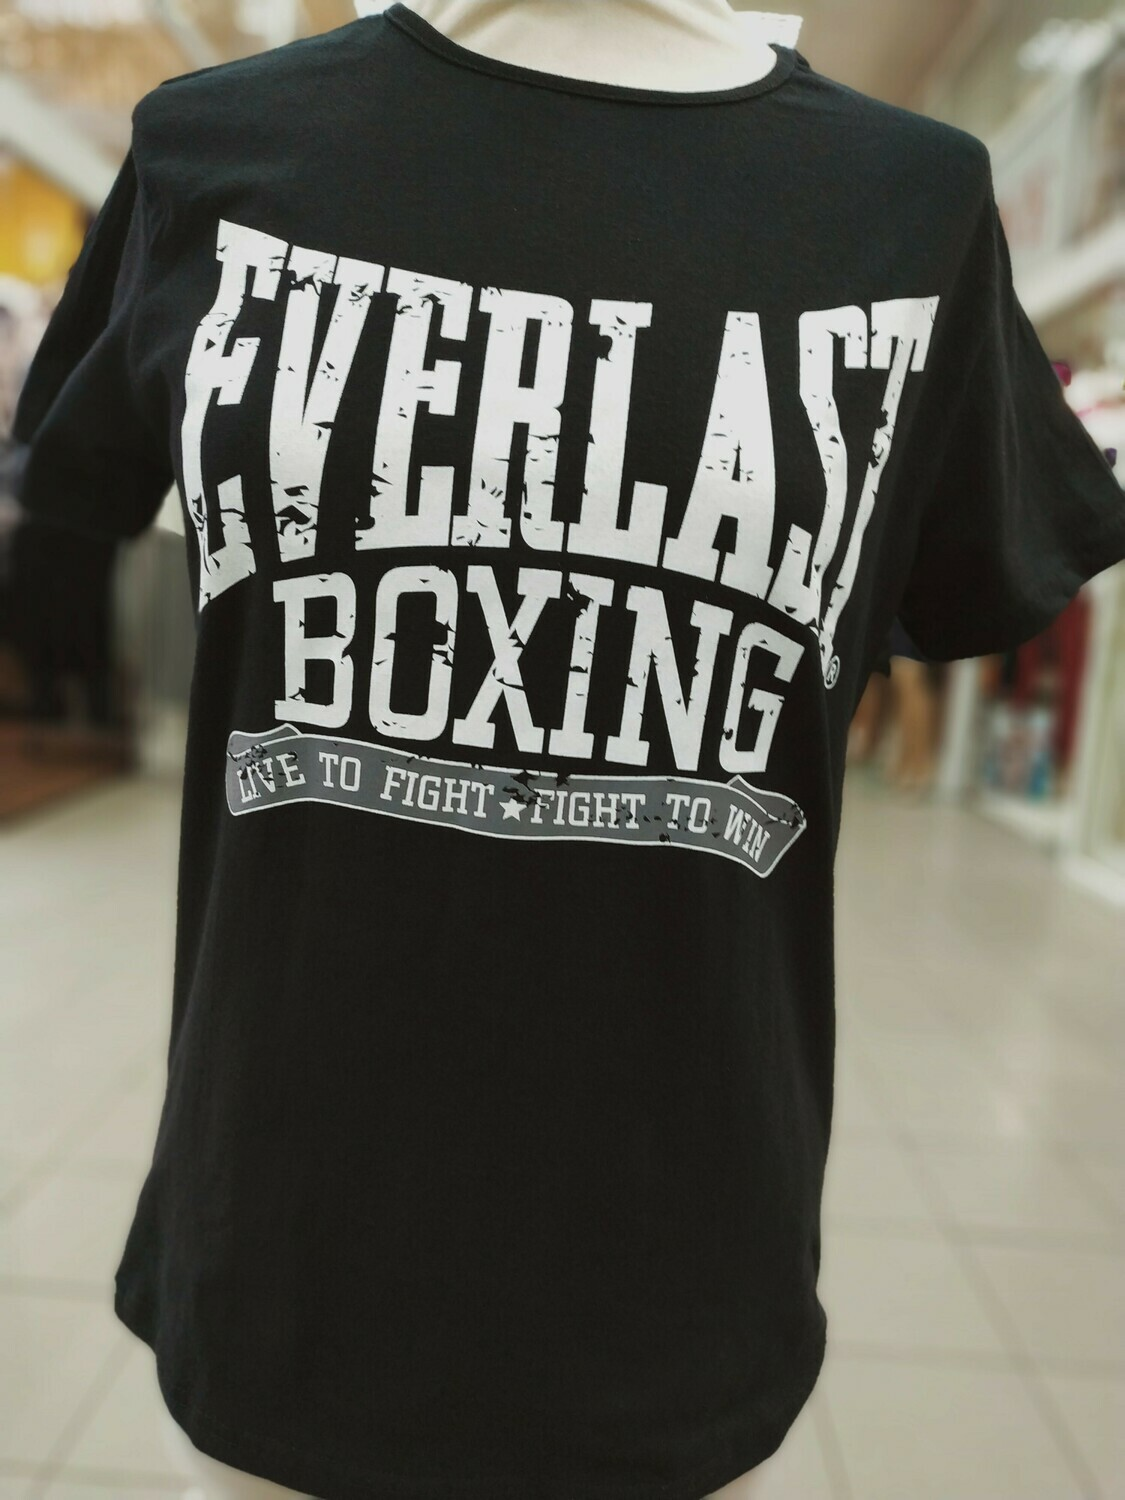 ФУТБОЛКА EVERLAST BOXING чёрная